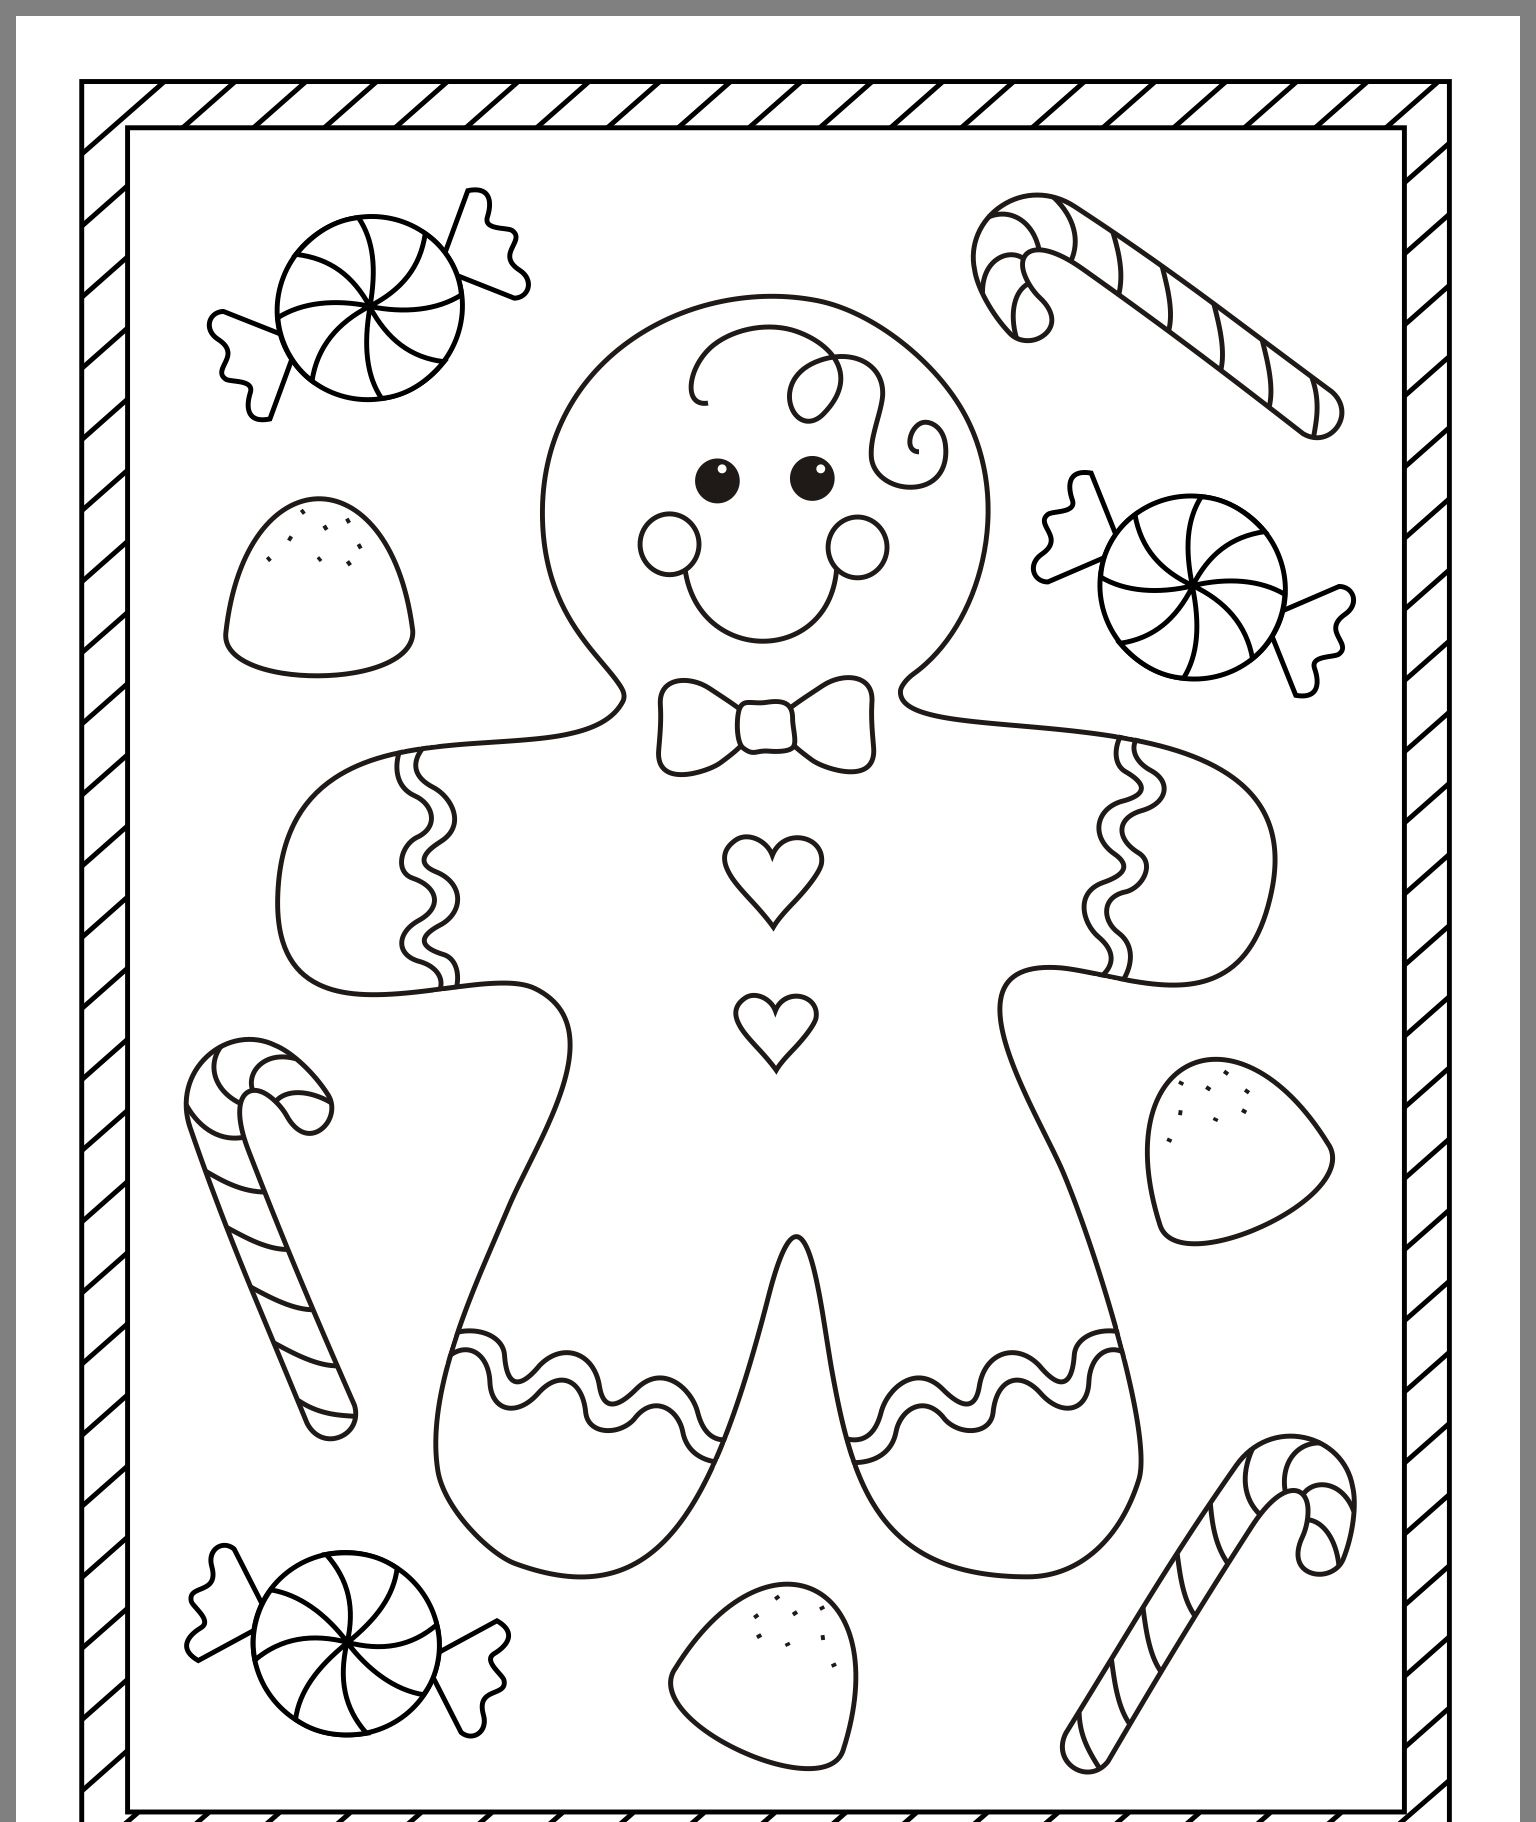 Free Christmas Coloring Pages Image By Sara Mcintyre On